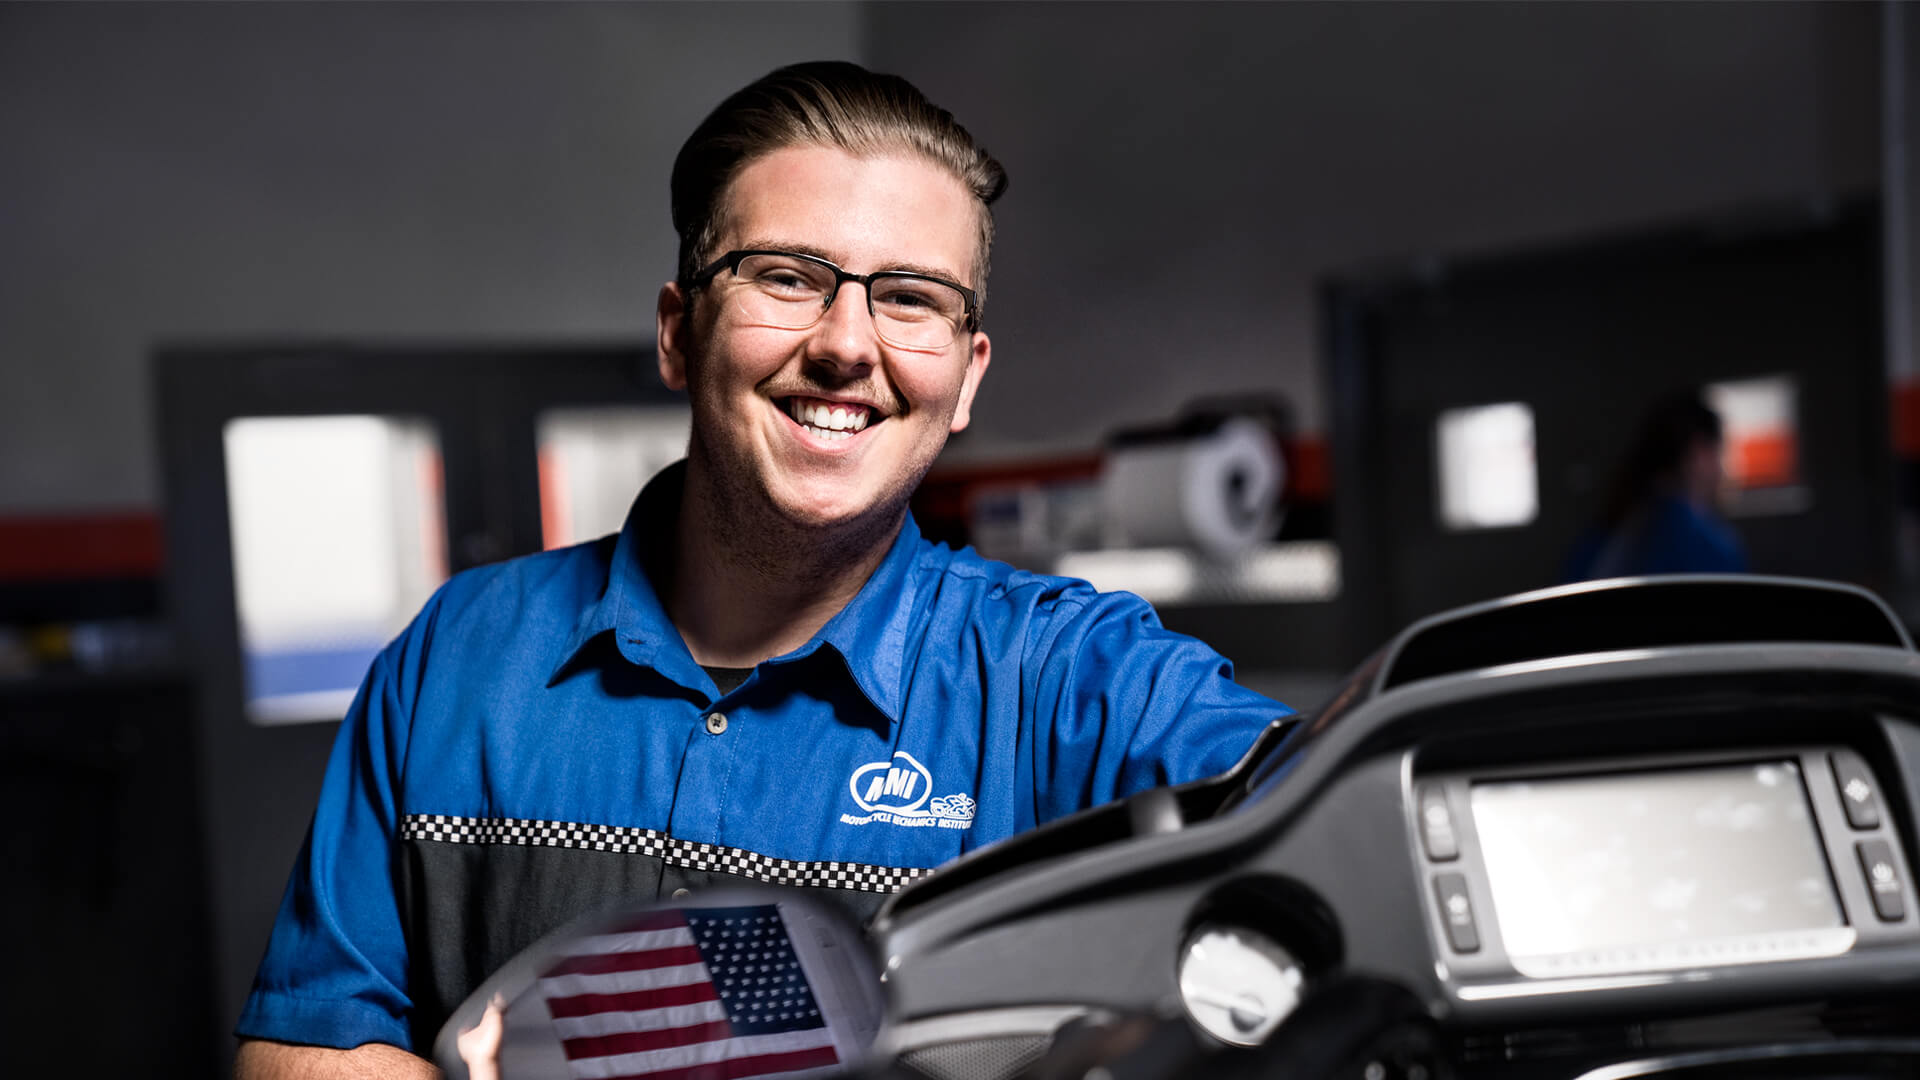 Motorcycle technician in training